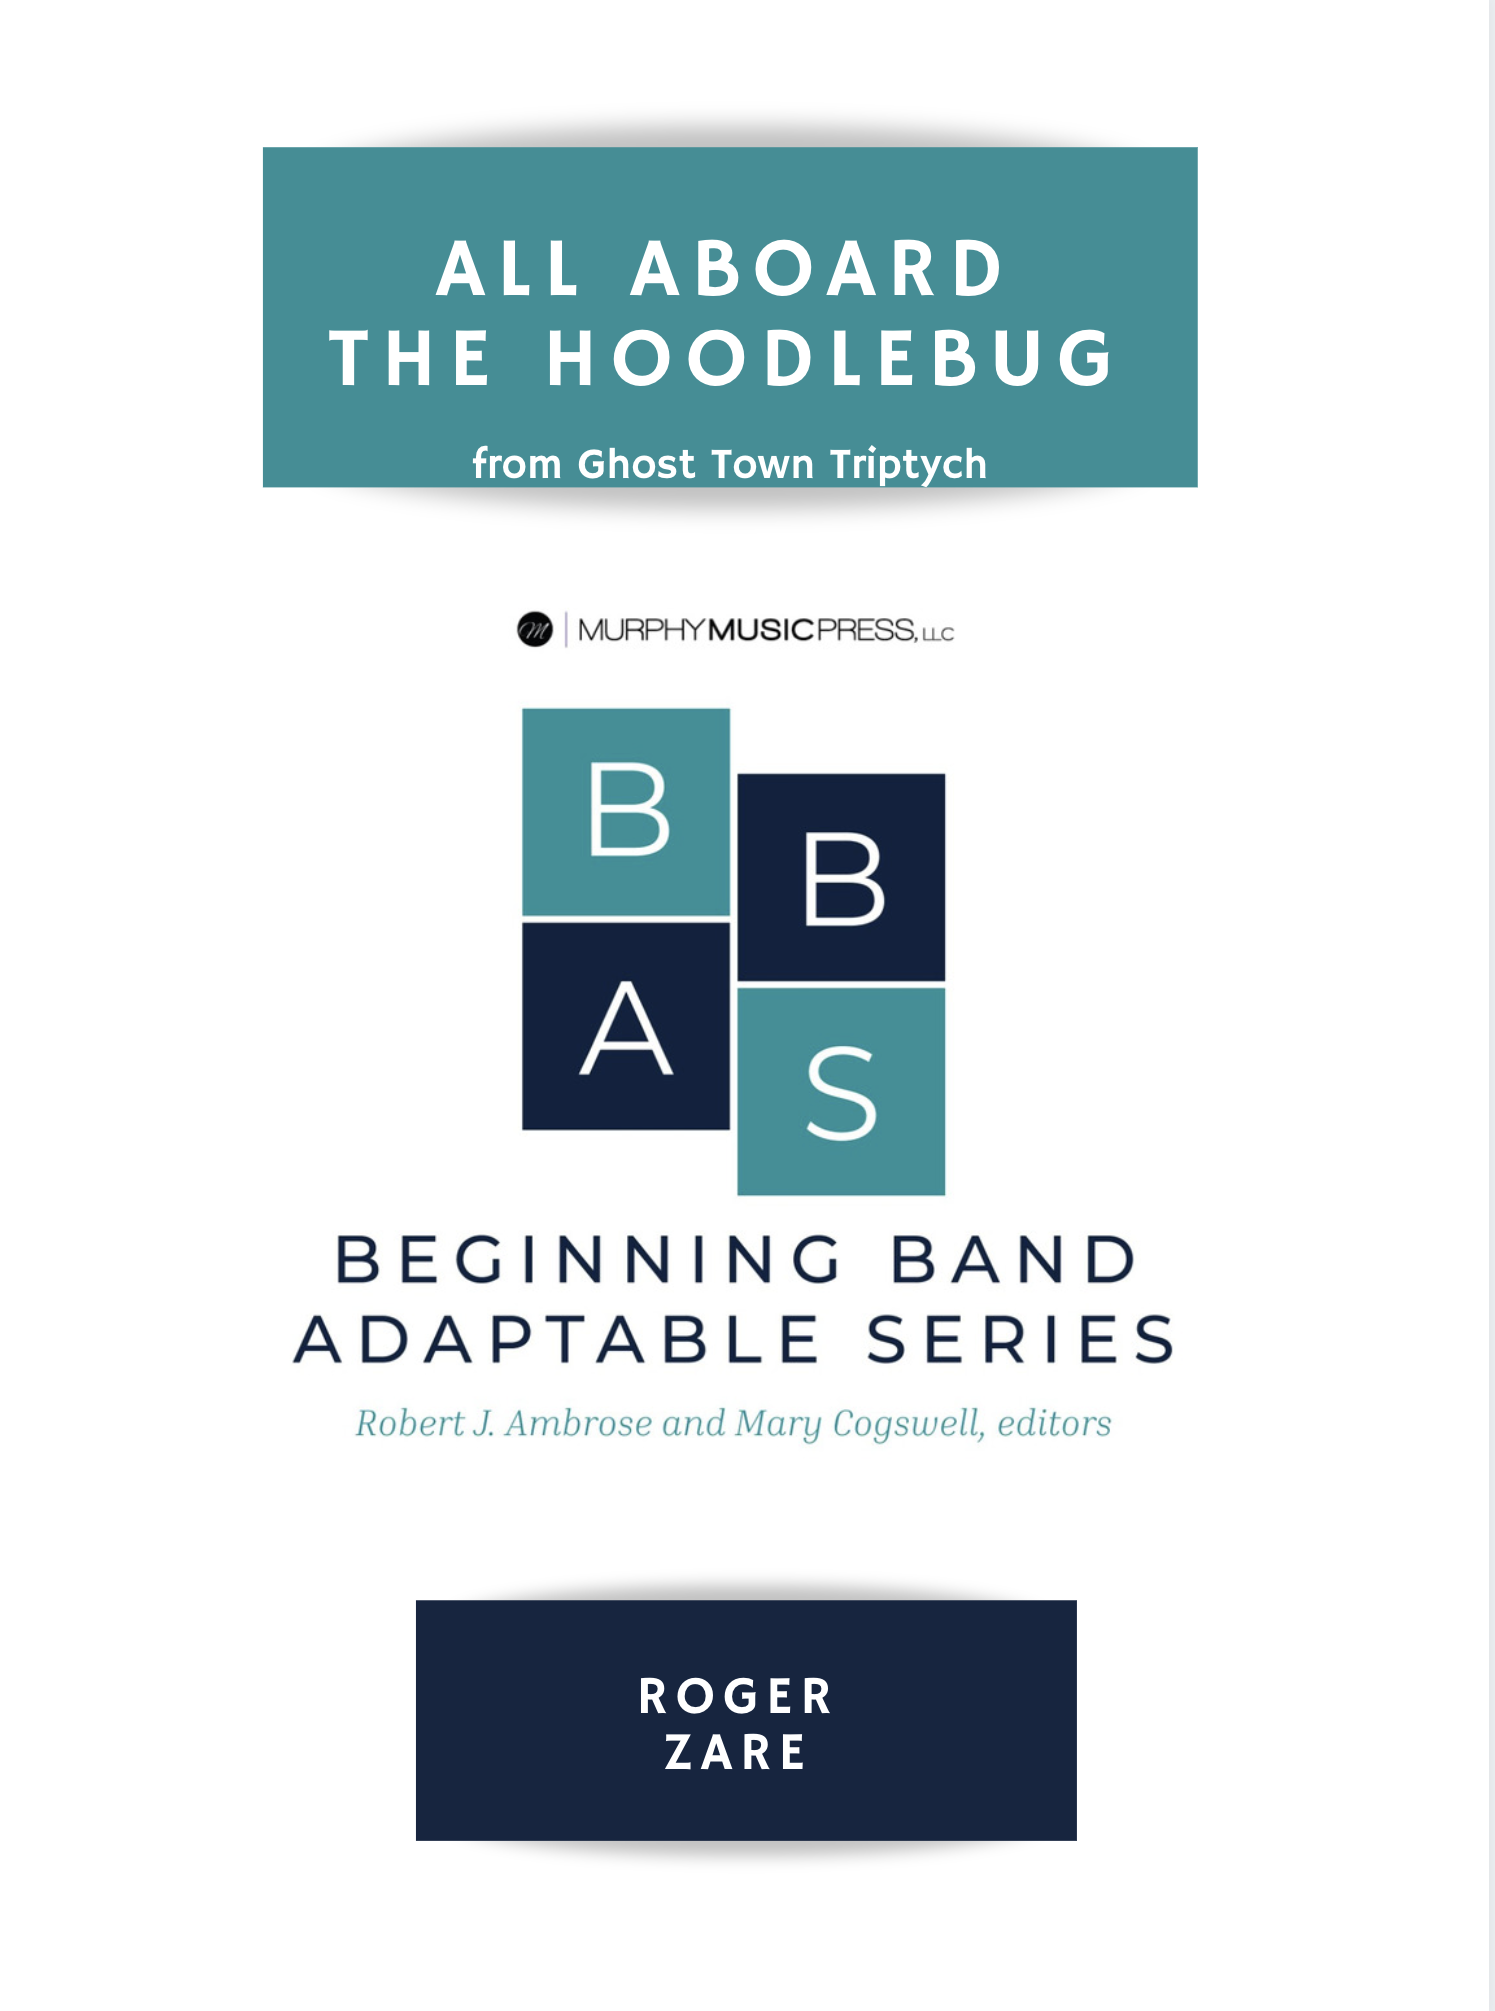 All Aboard The Hoodlebug (From Ghost Town Triptych) by Roger Zare